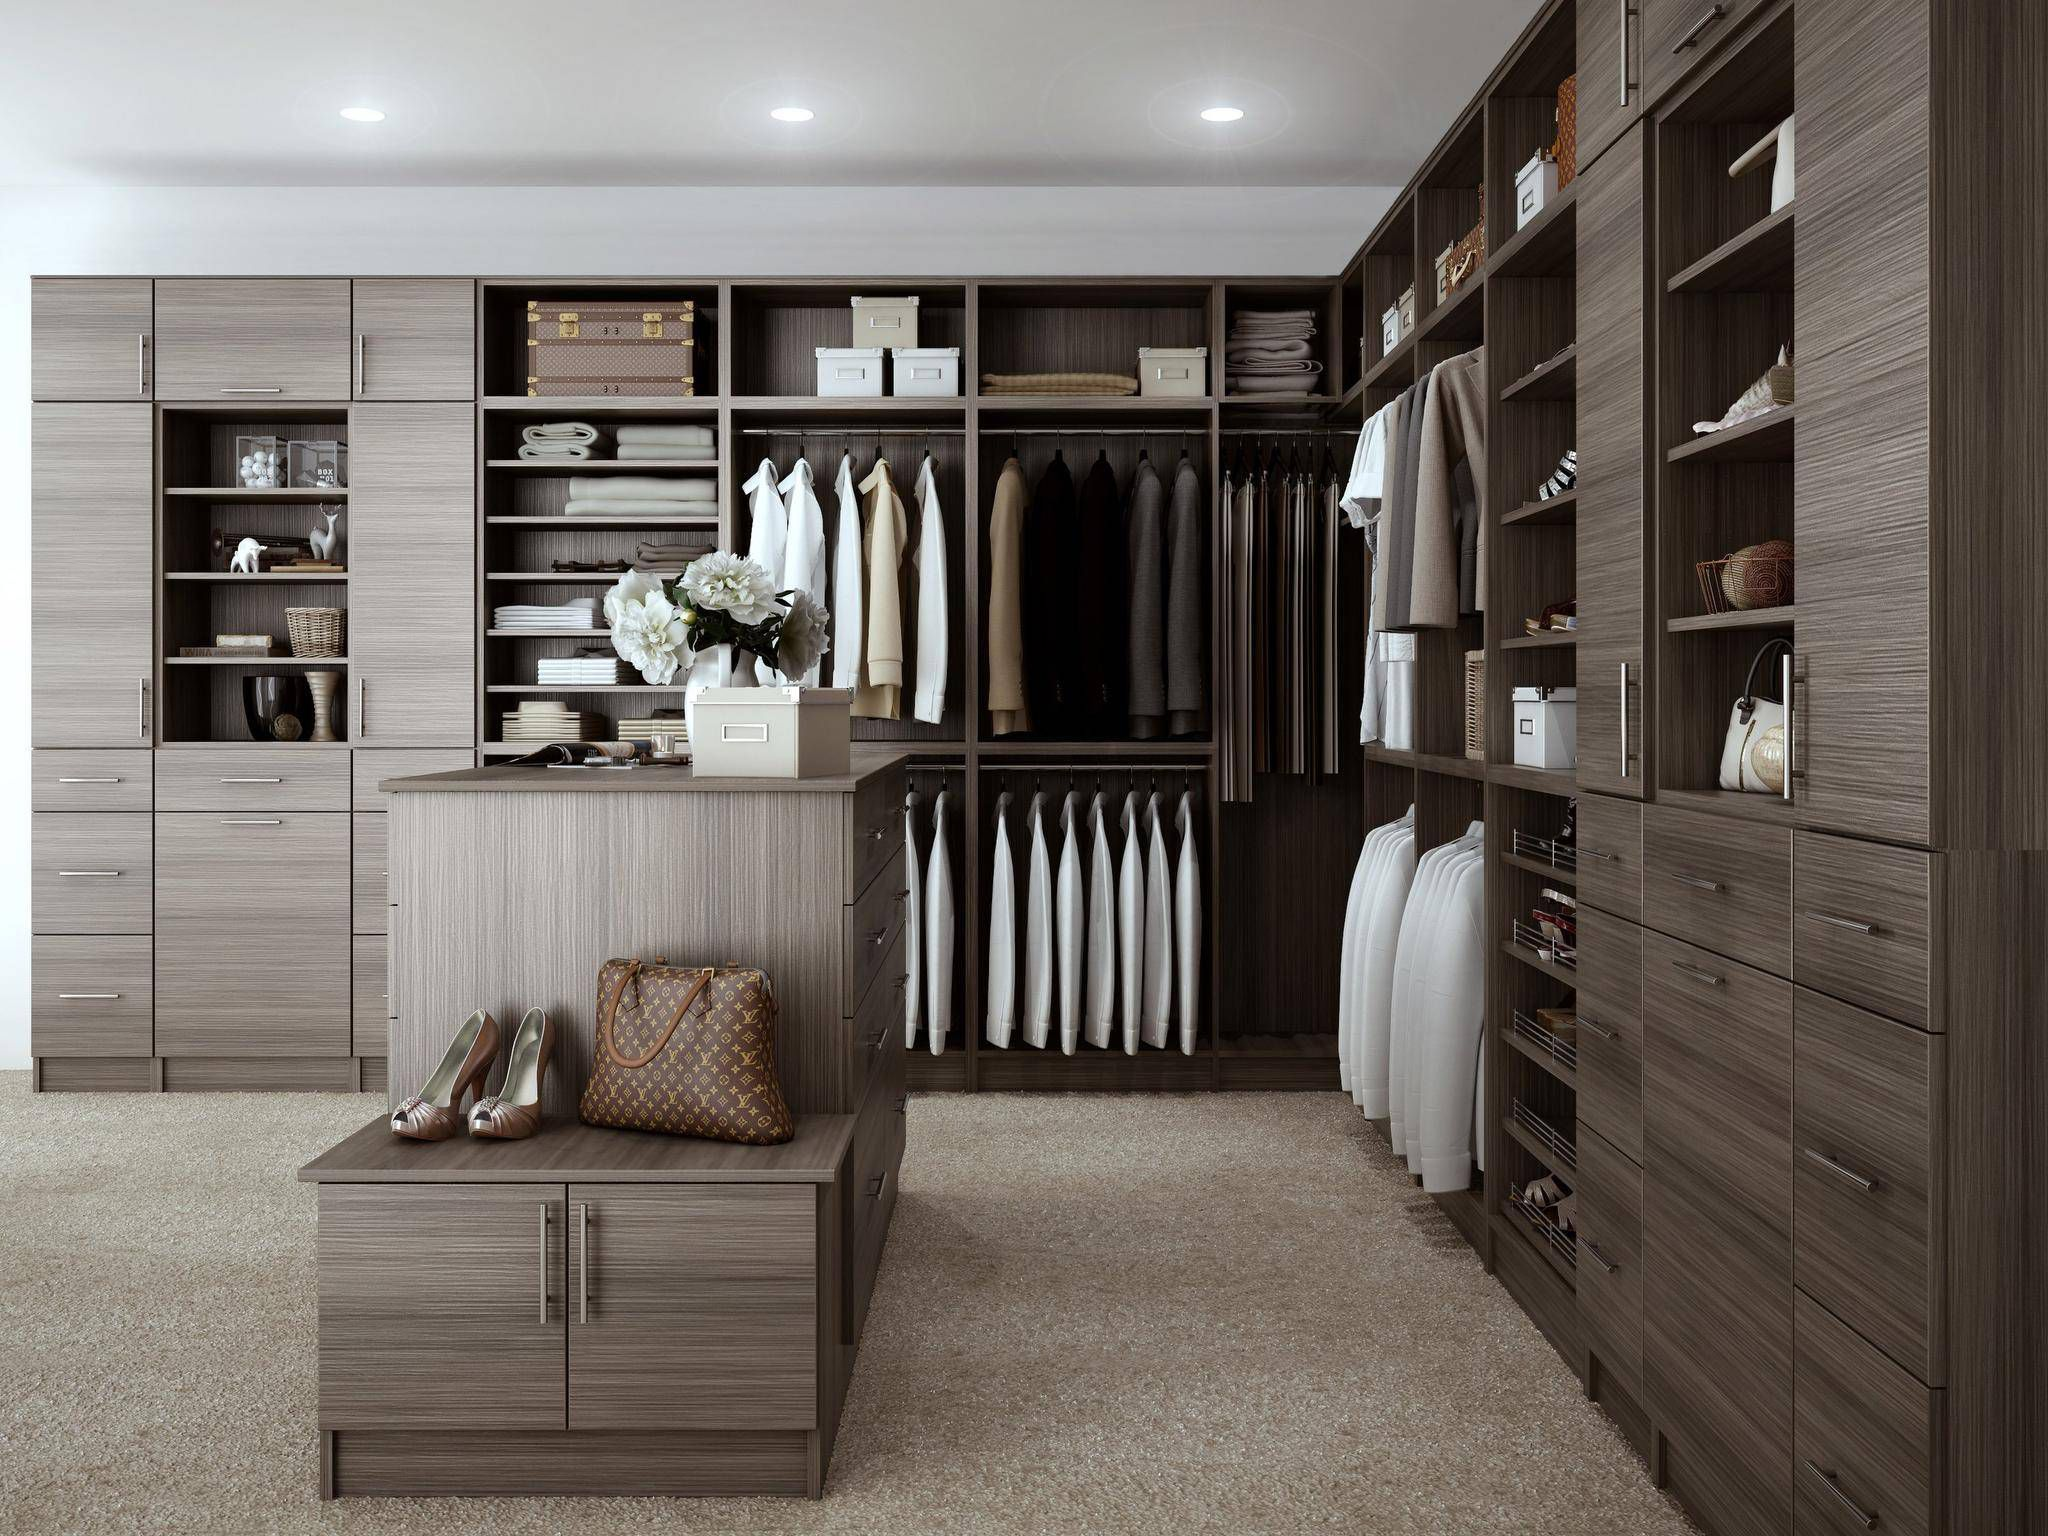 How To Turn Your Spare Room Into The Ultimate Walk In Closet Globe And Mail